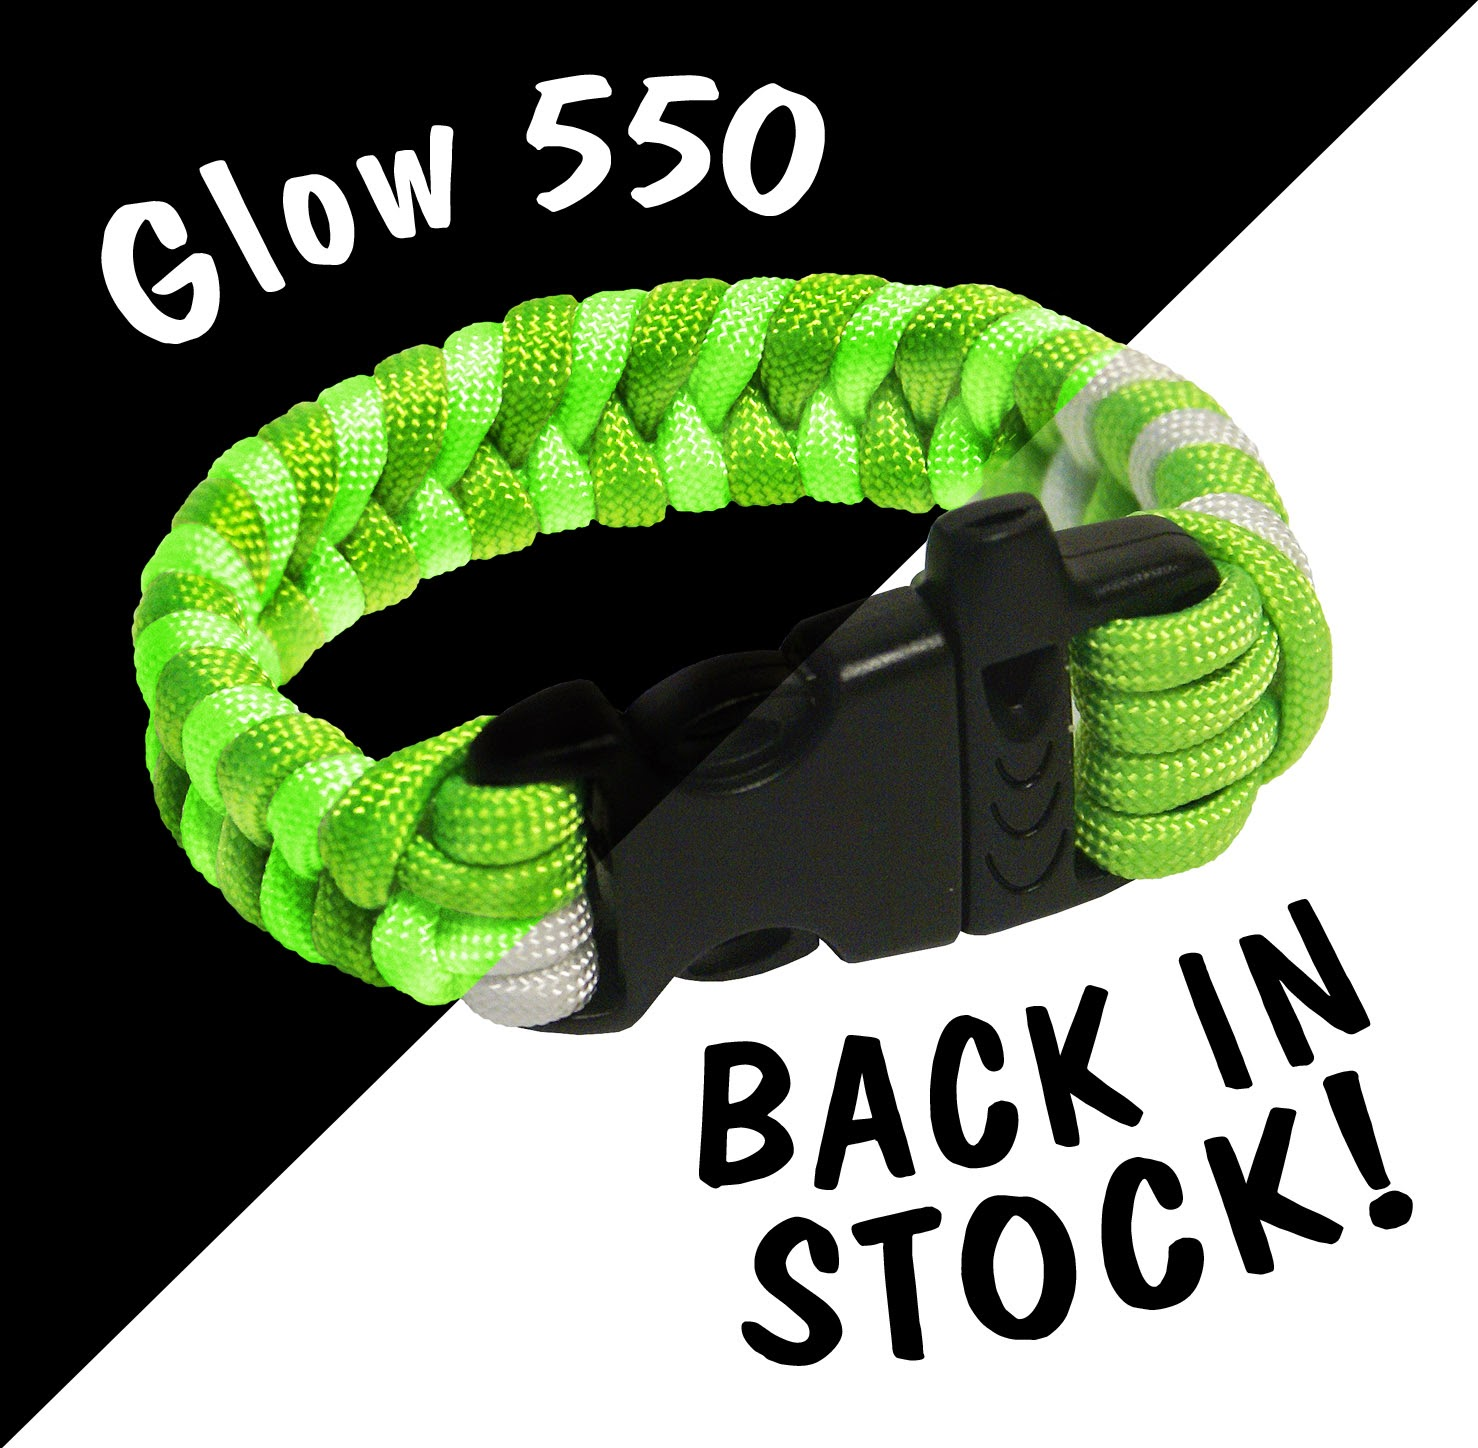 Glow-in-the-Dark Parachute Cord back in stock!